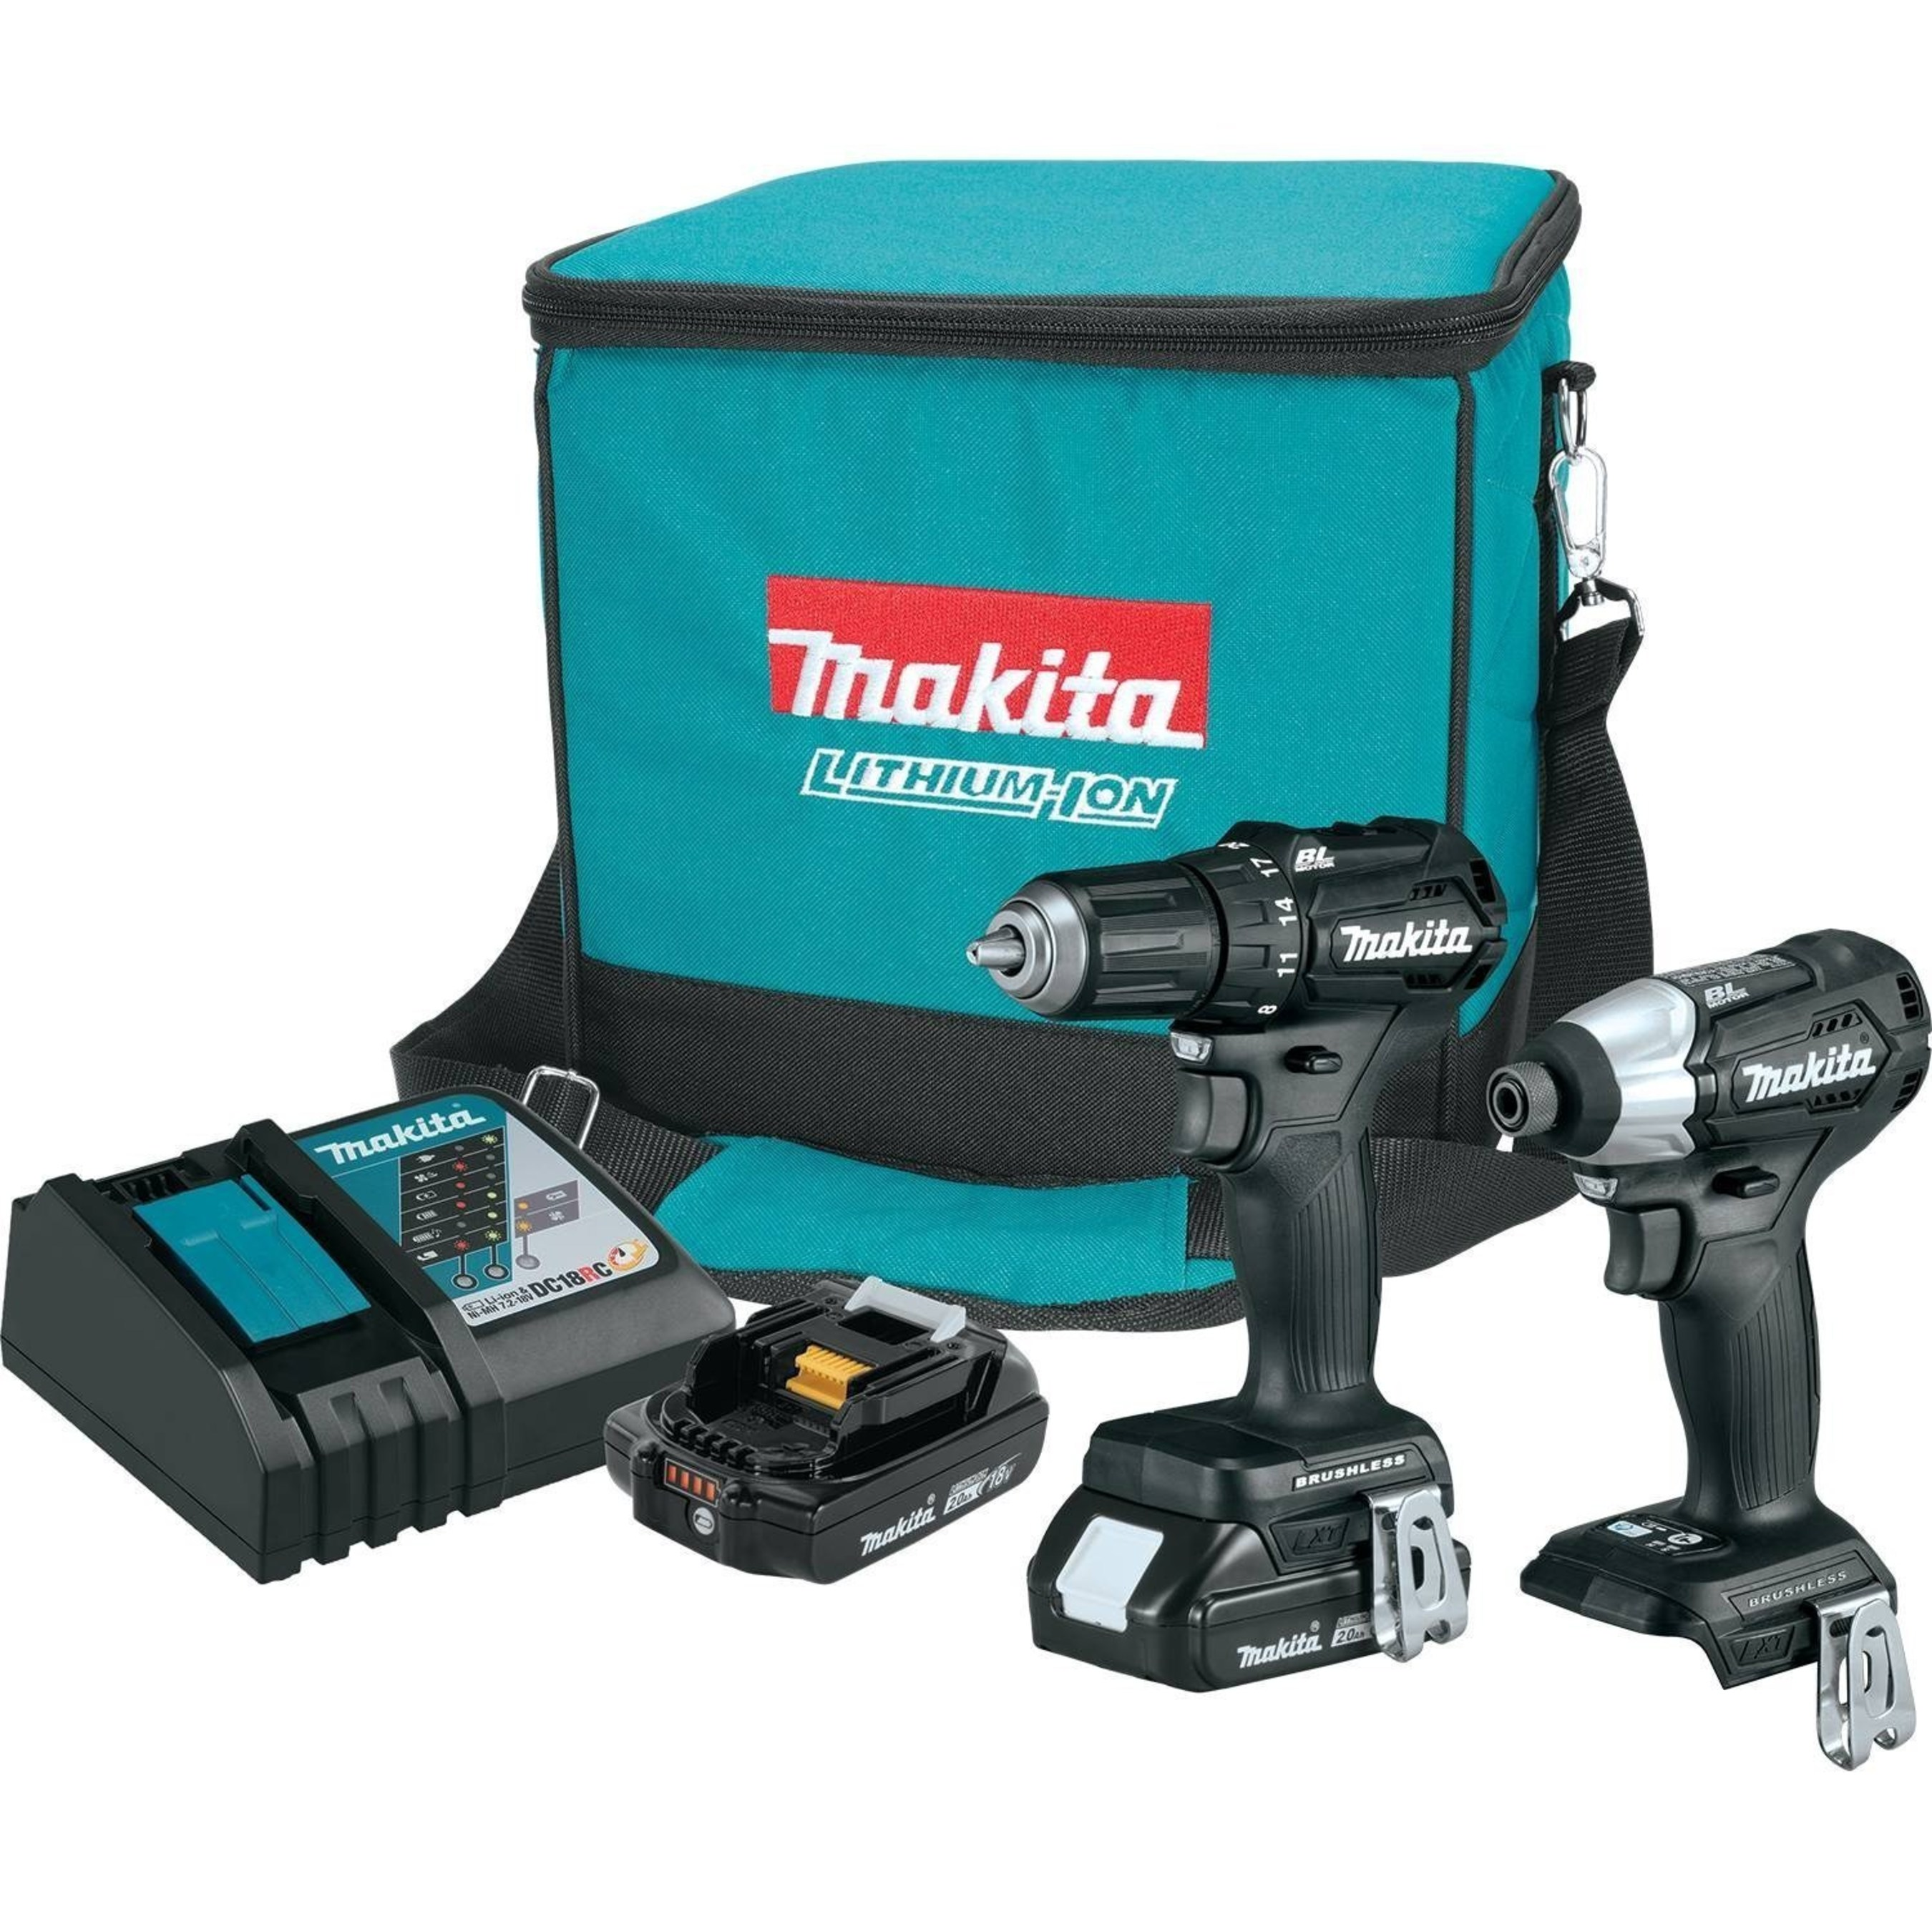 Makita 18V LXT Sub-Compact Brushless tools, a new class in cordless, are the most compact and lightest weight in the 18-volt category.